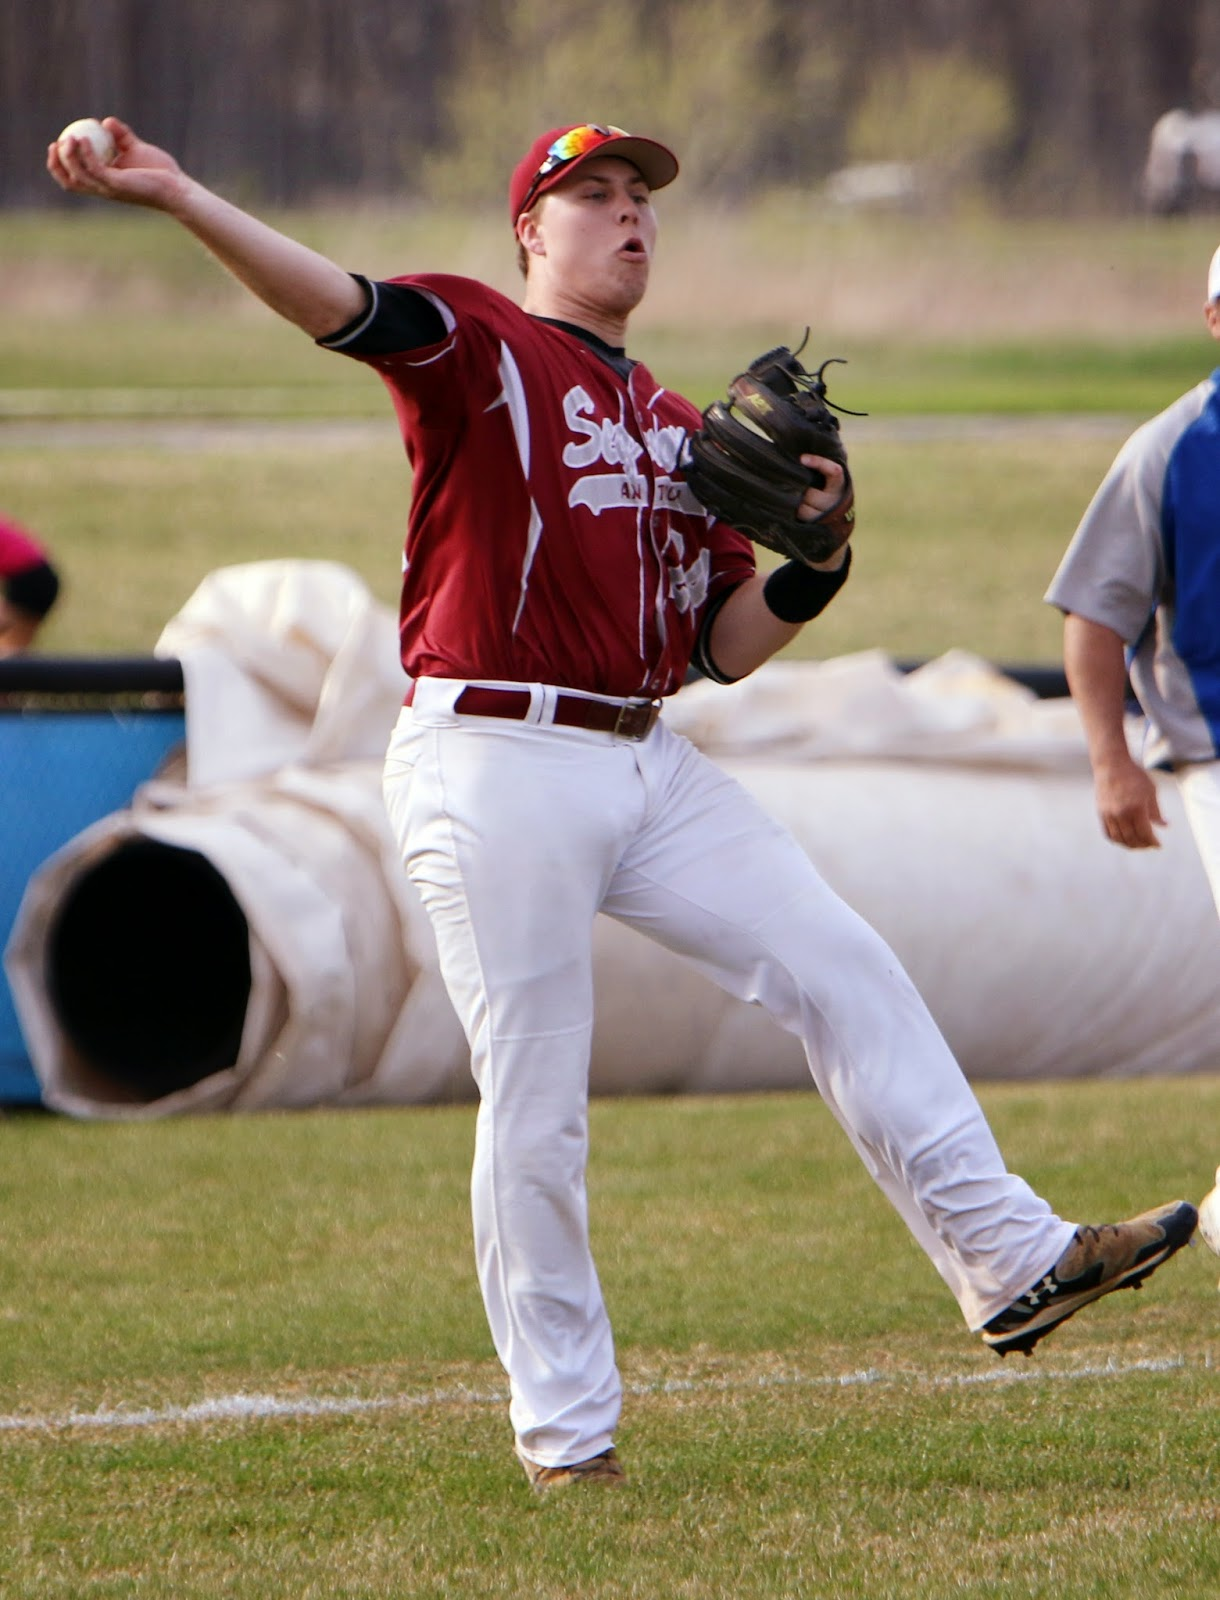 After a hit, Benjamin Gutke throws a ball to first looking to get an out.